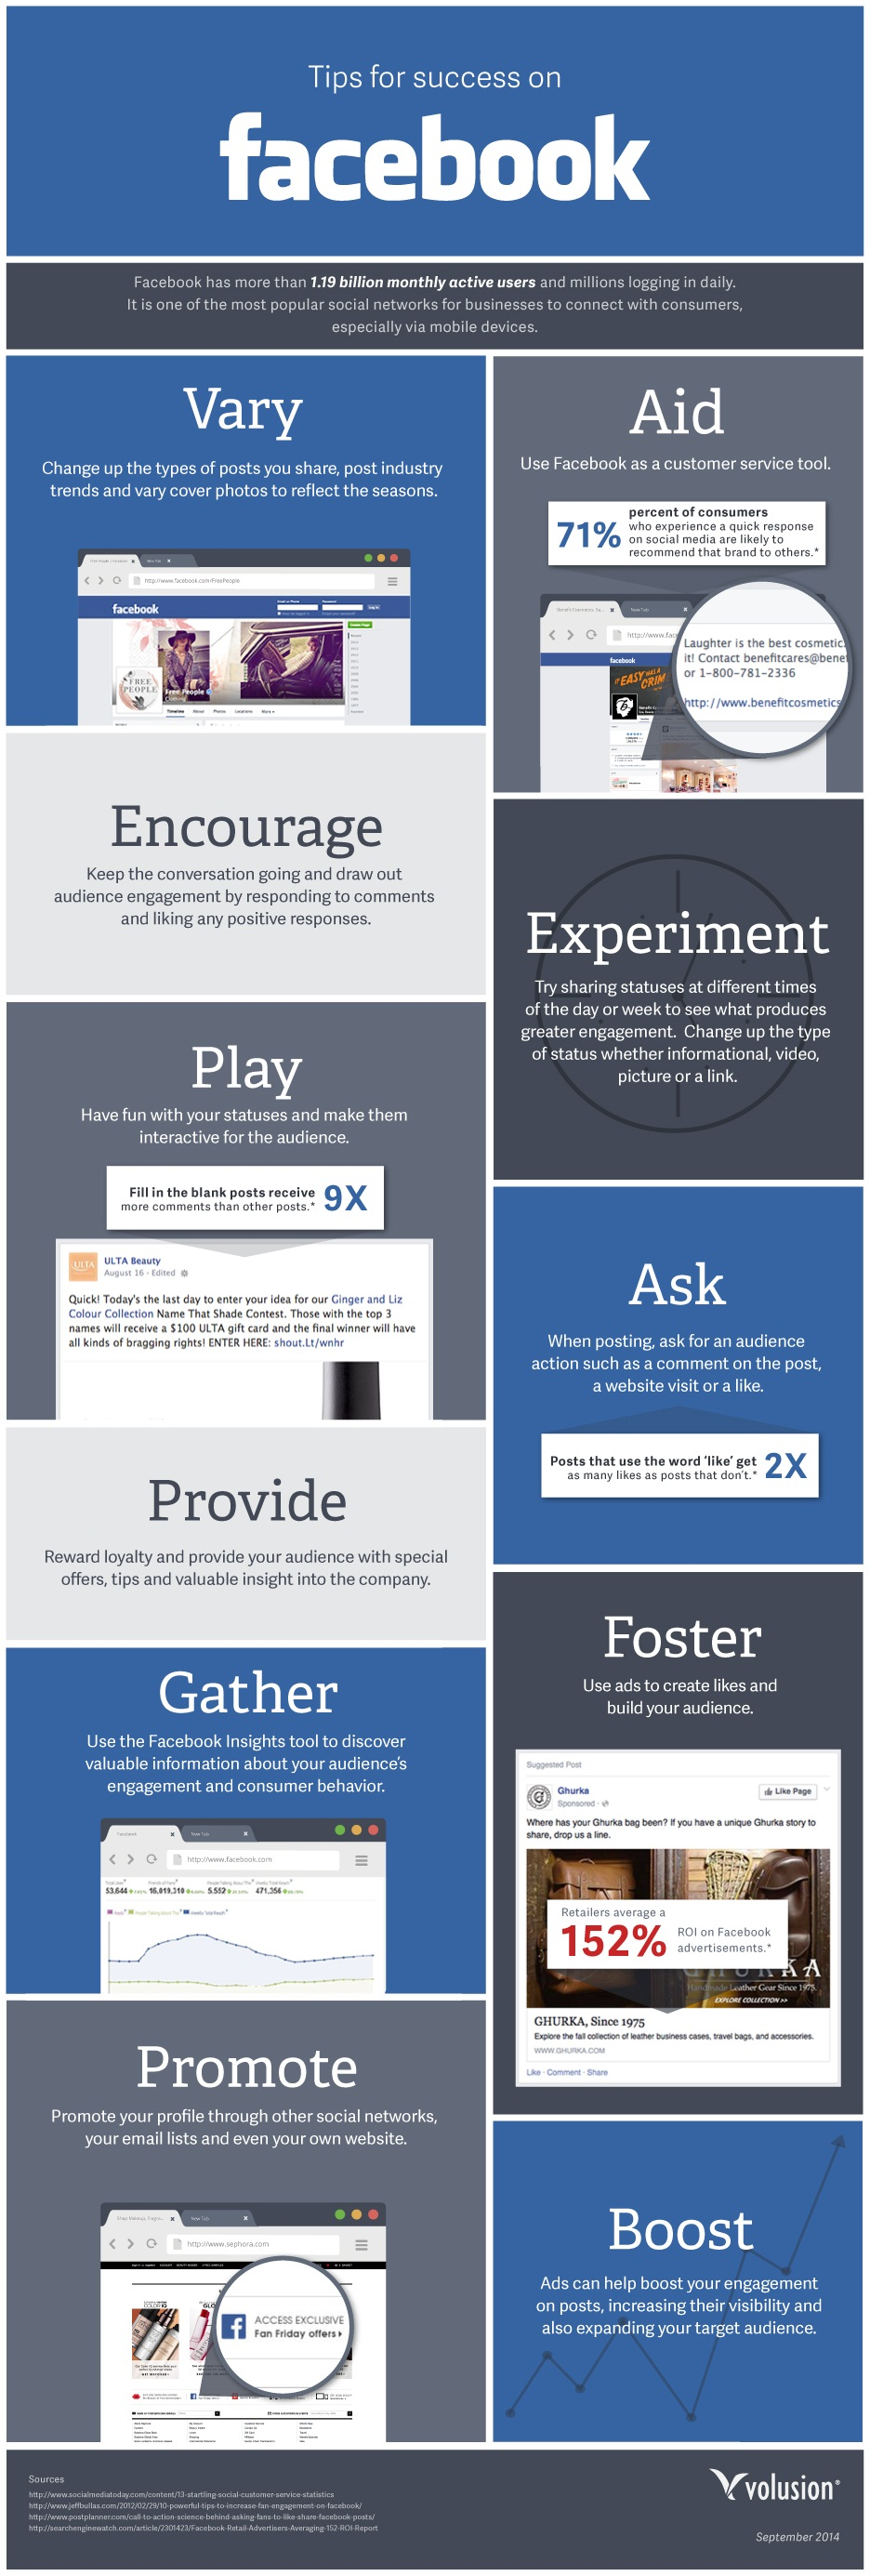 Marketing Tips for success on Facebook for companies - #infographic